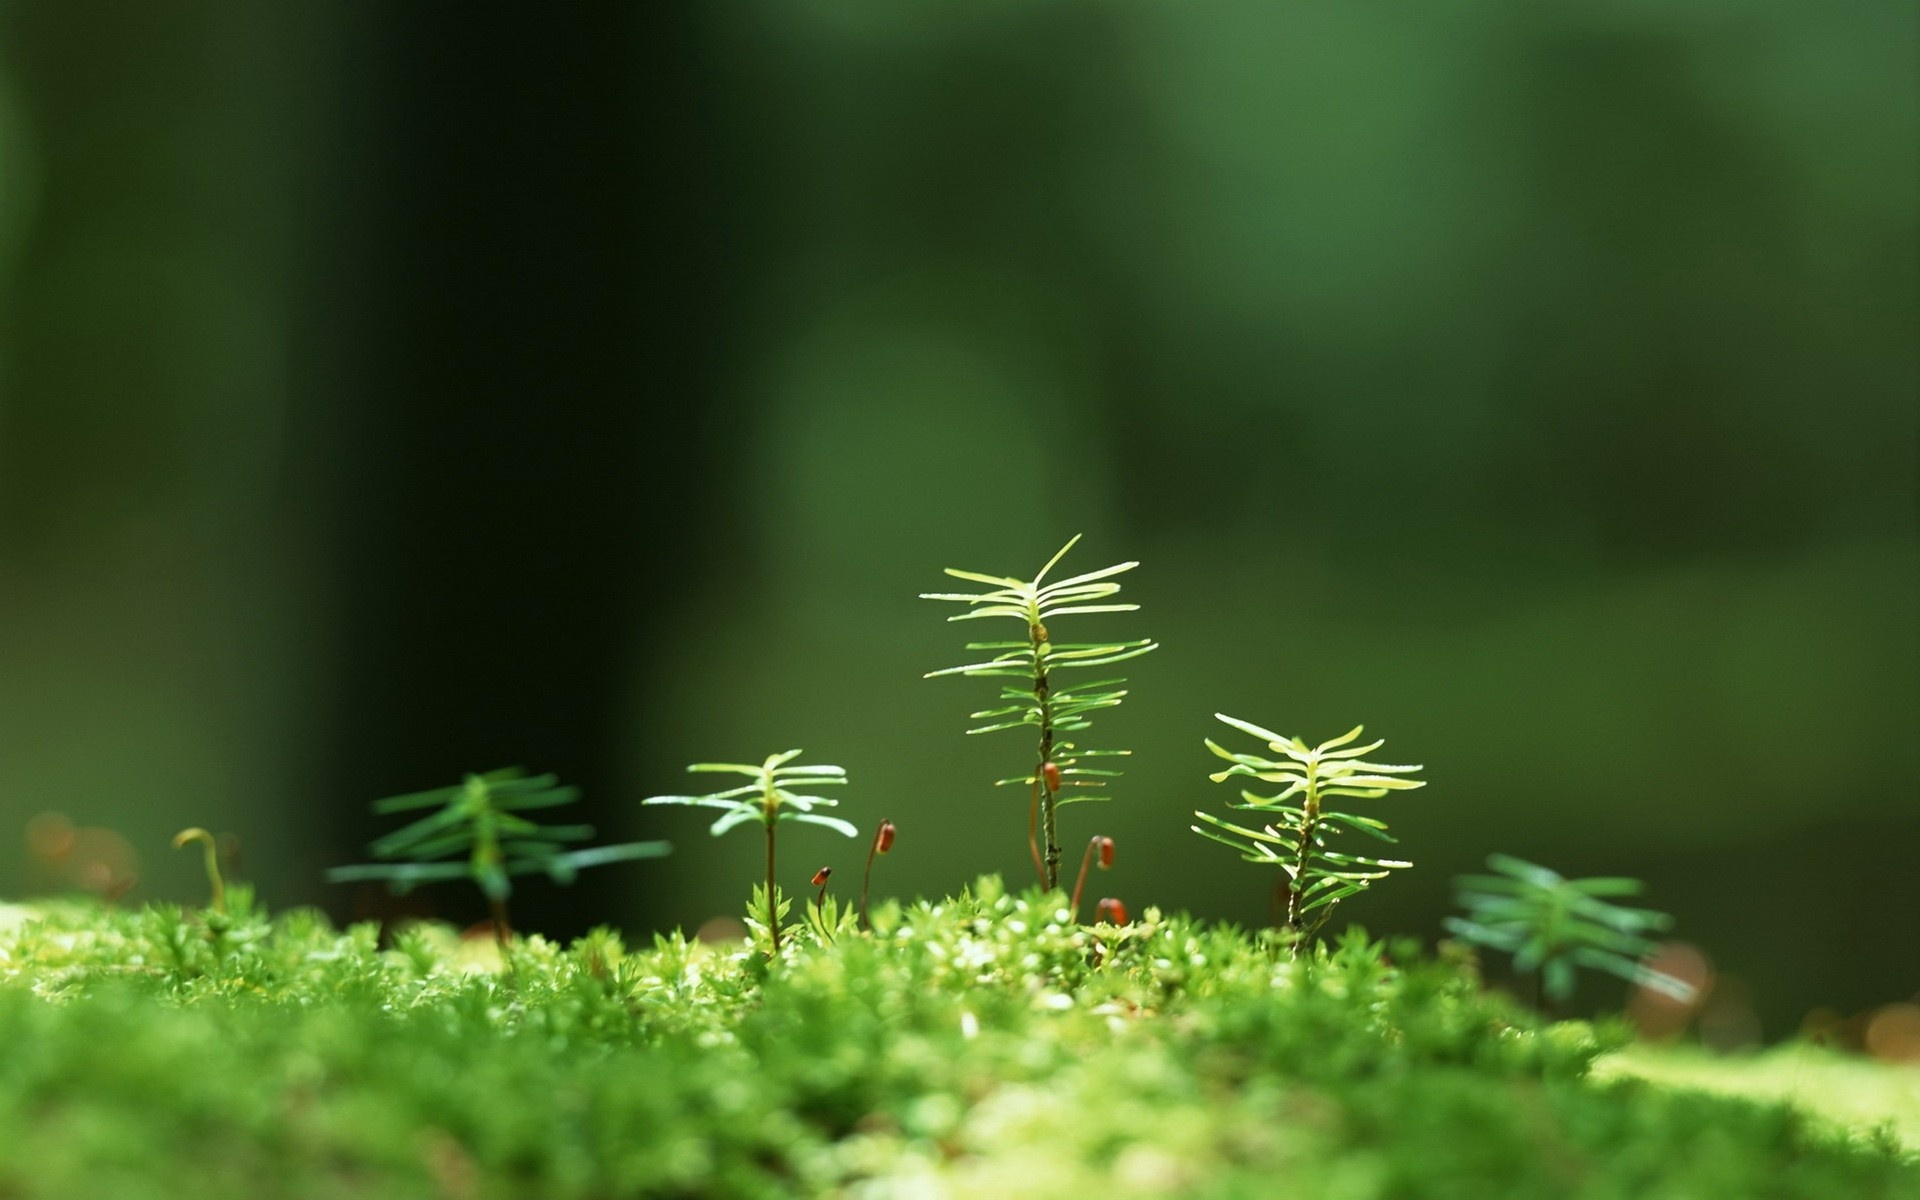 cute-backgrounds-small-nature-plant-611662